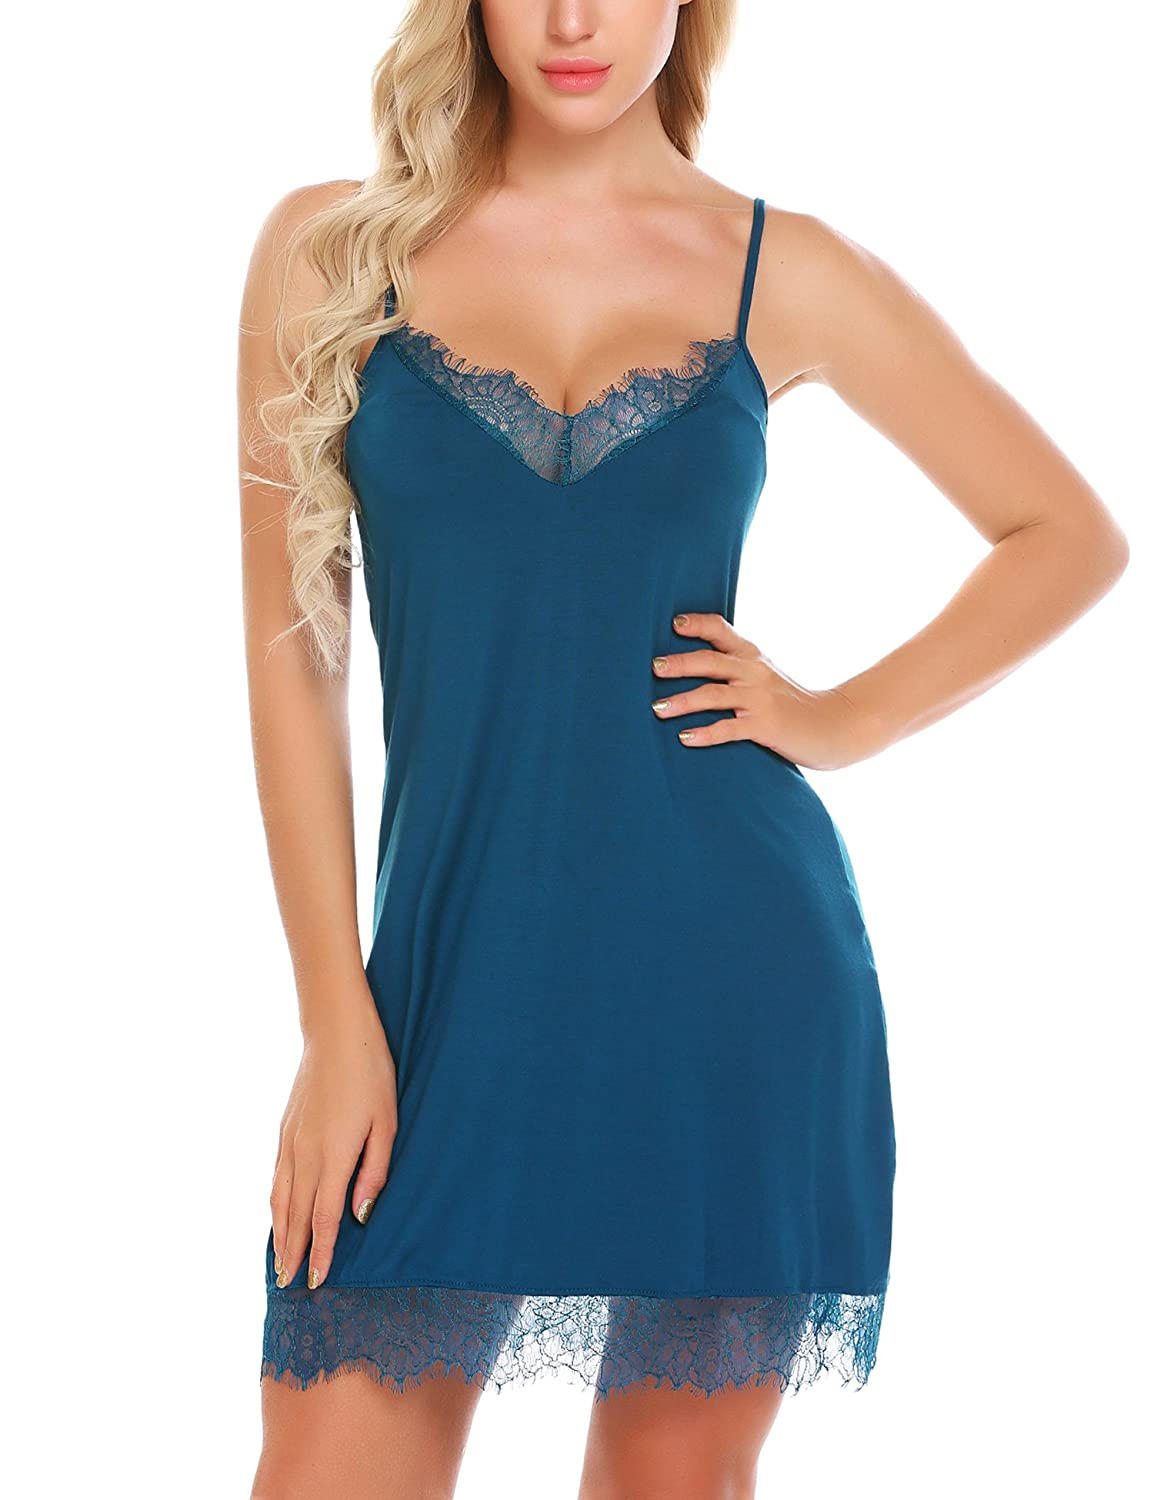 bluee Imposes Women Full Slip Cotton Nightgown Sexy Lingerie Lace Trim Chemise